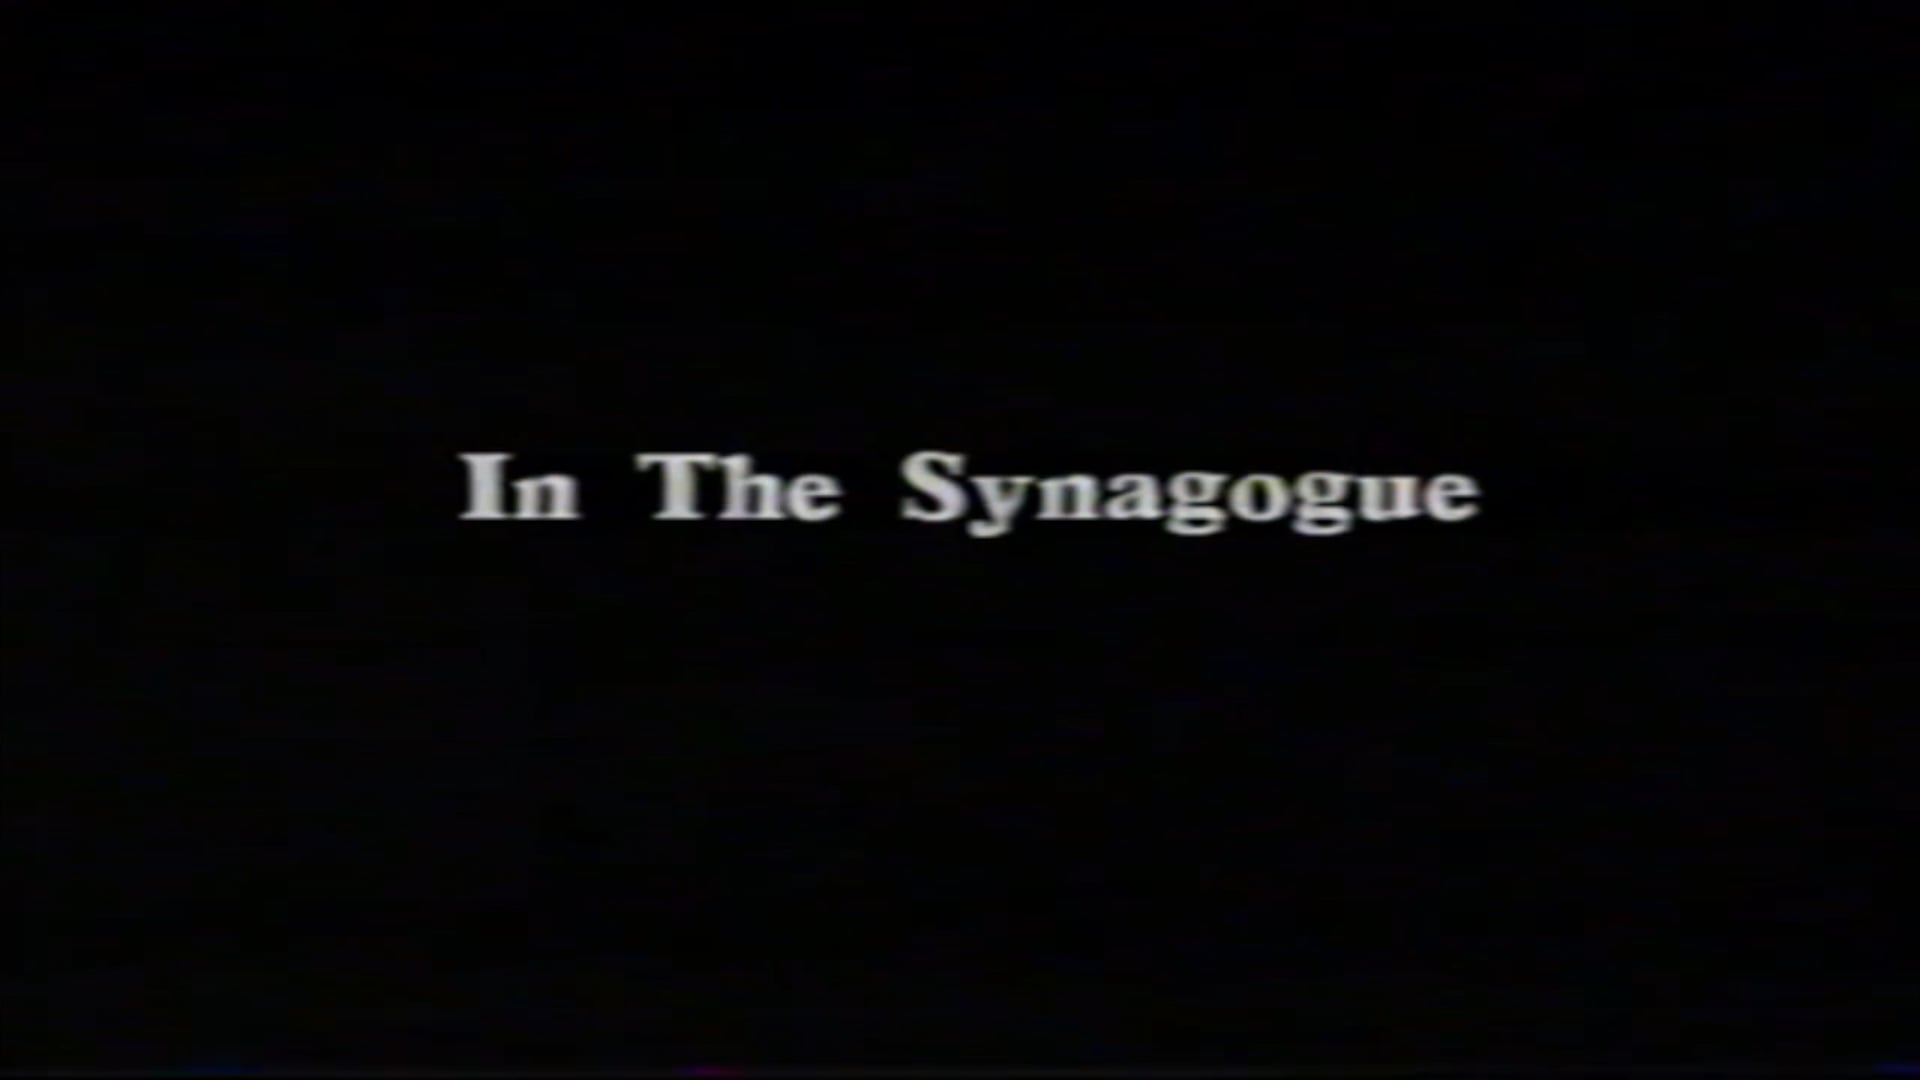 IN THE SYNAGOGUE - Opening scene